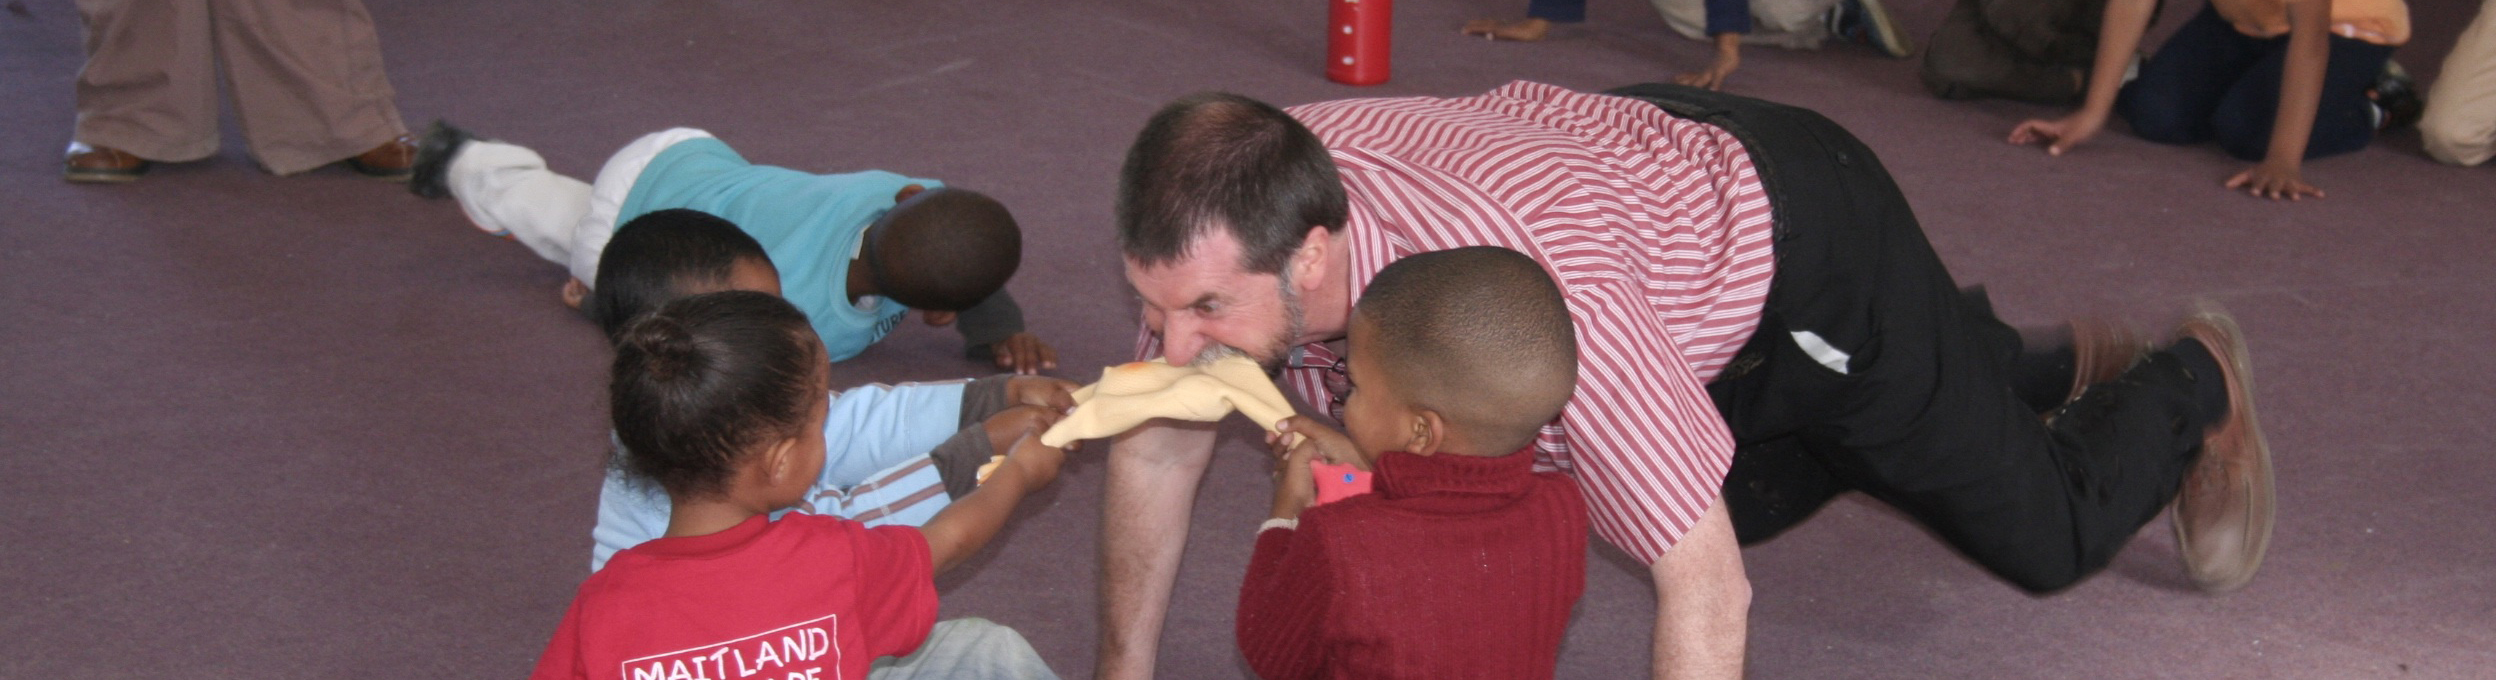 South Africa ministry (4) A